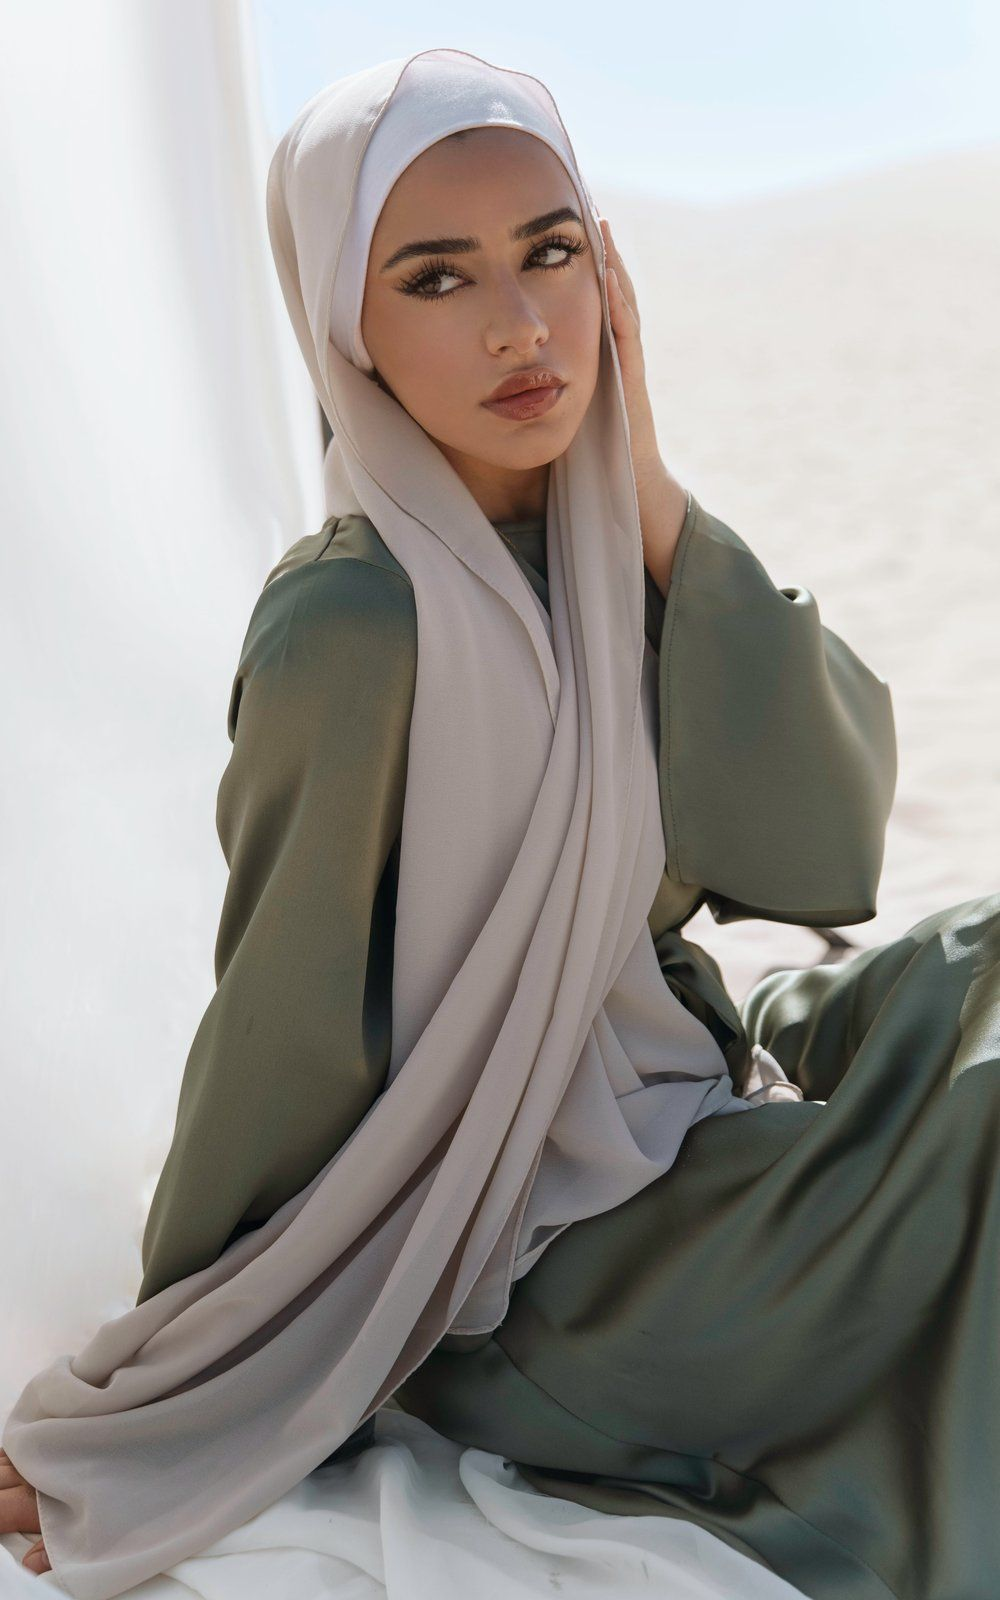 Modern Chiffon Hijab Scarves From Culture Hijab Co. - Ships from the US